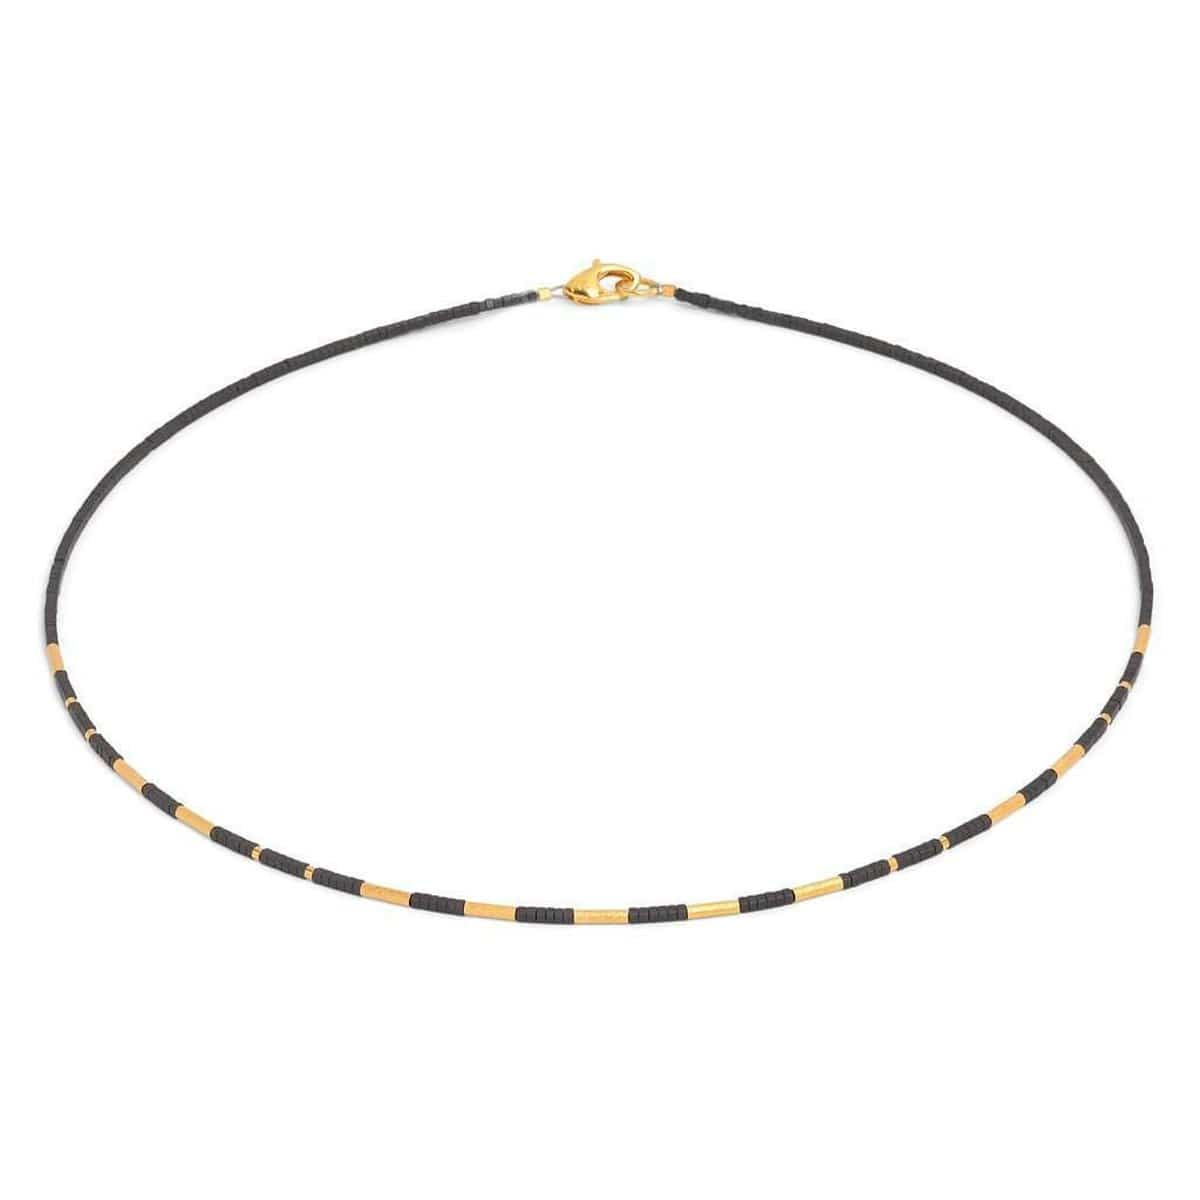 Wurfel Hematine Necklace - 84499276